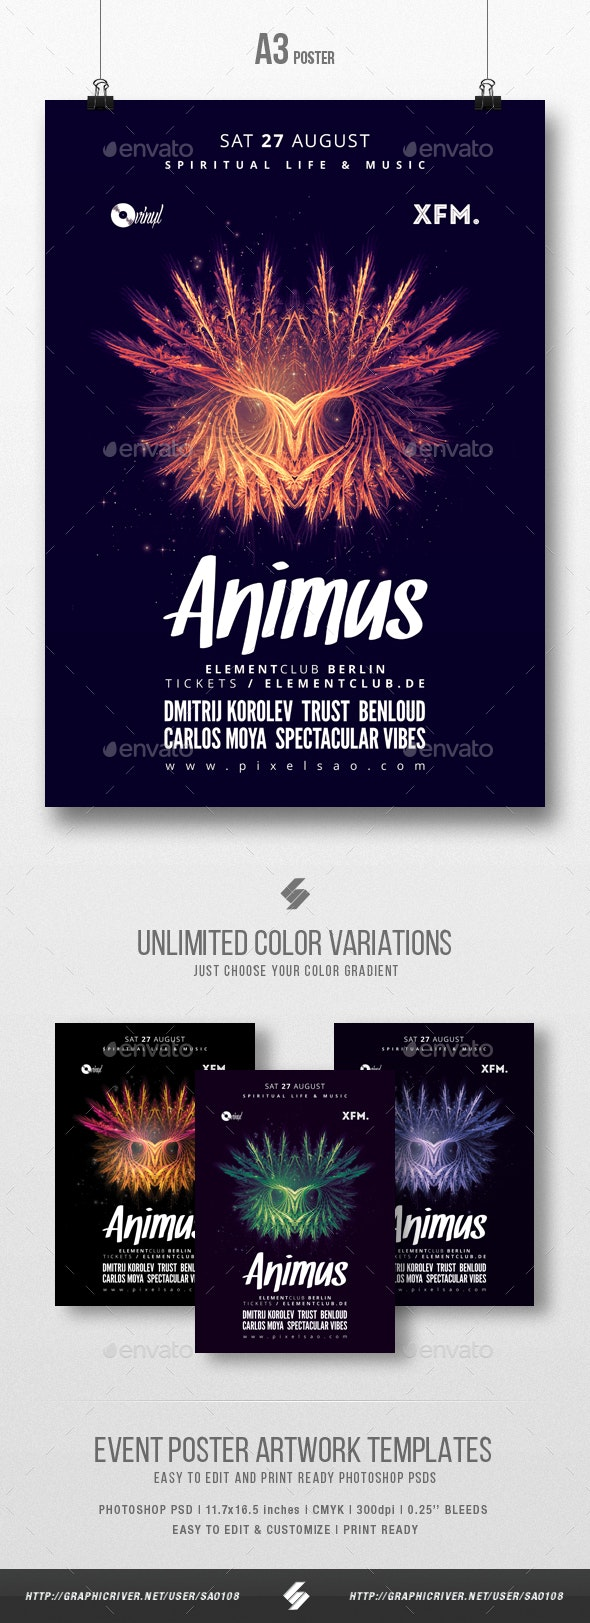 Animus - Progressive Party Flyer / Poster Template A3 - Clubs & Parties Events